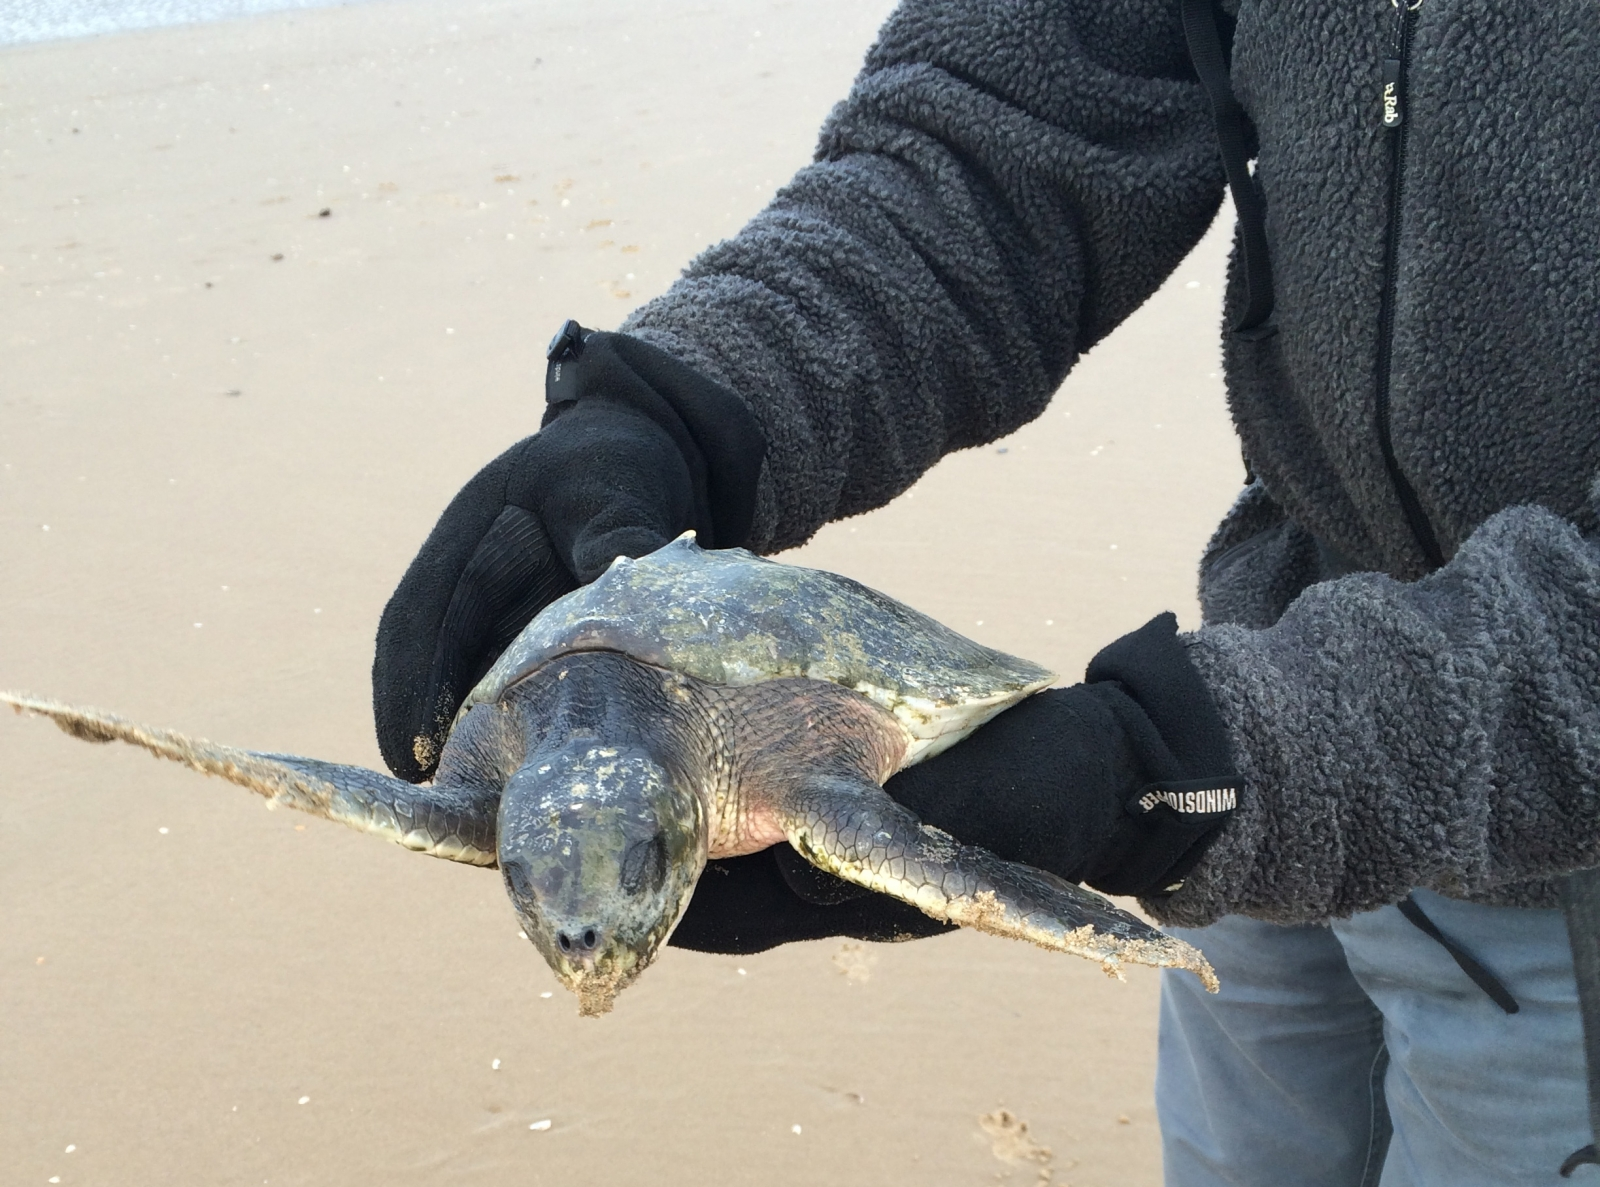 The Kemp's Ridley sea turtle found on Fomby beach, which is currently in rehab from swimming through cold waters